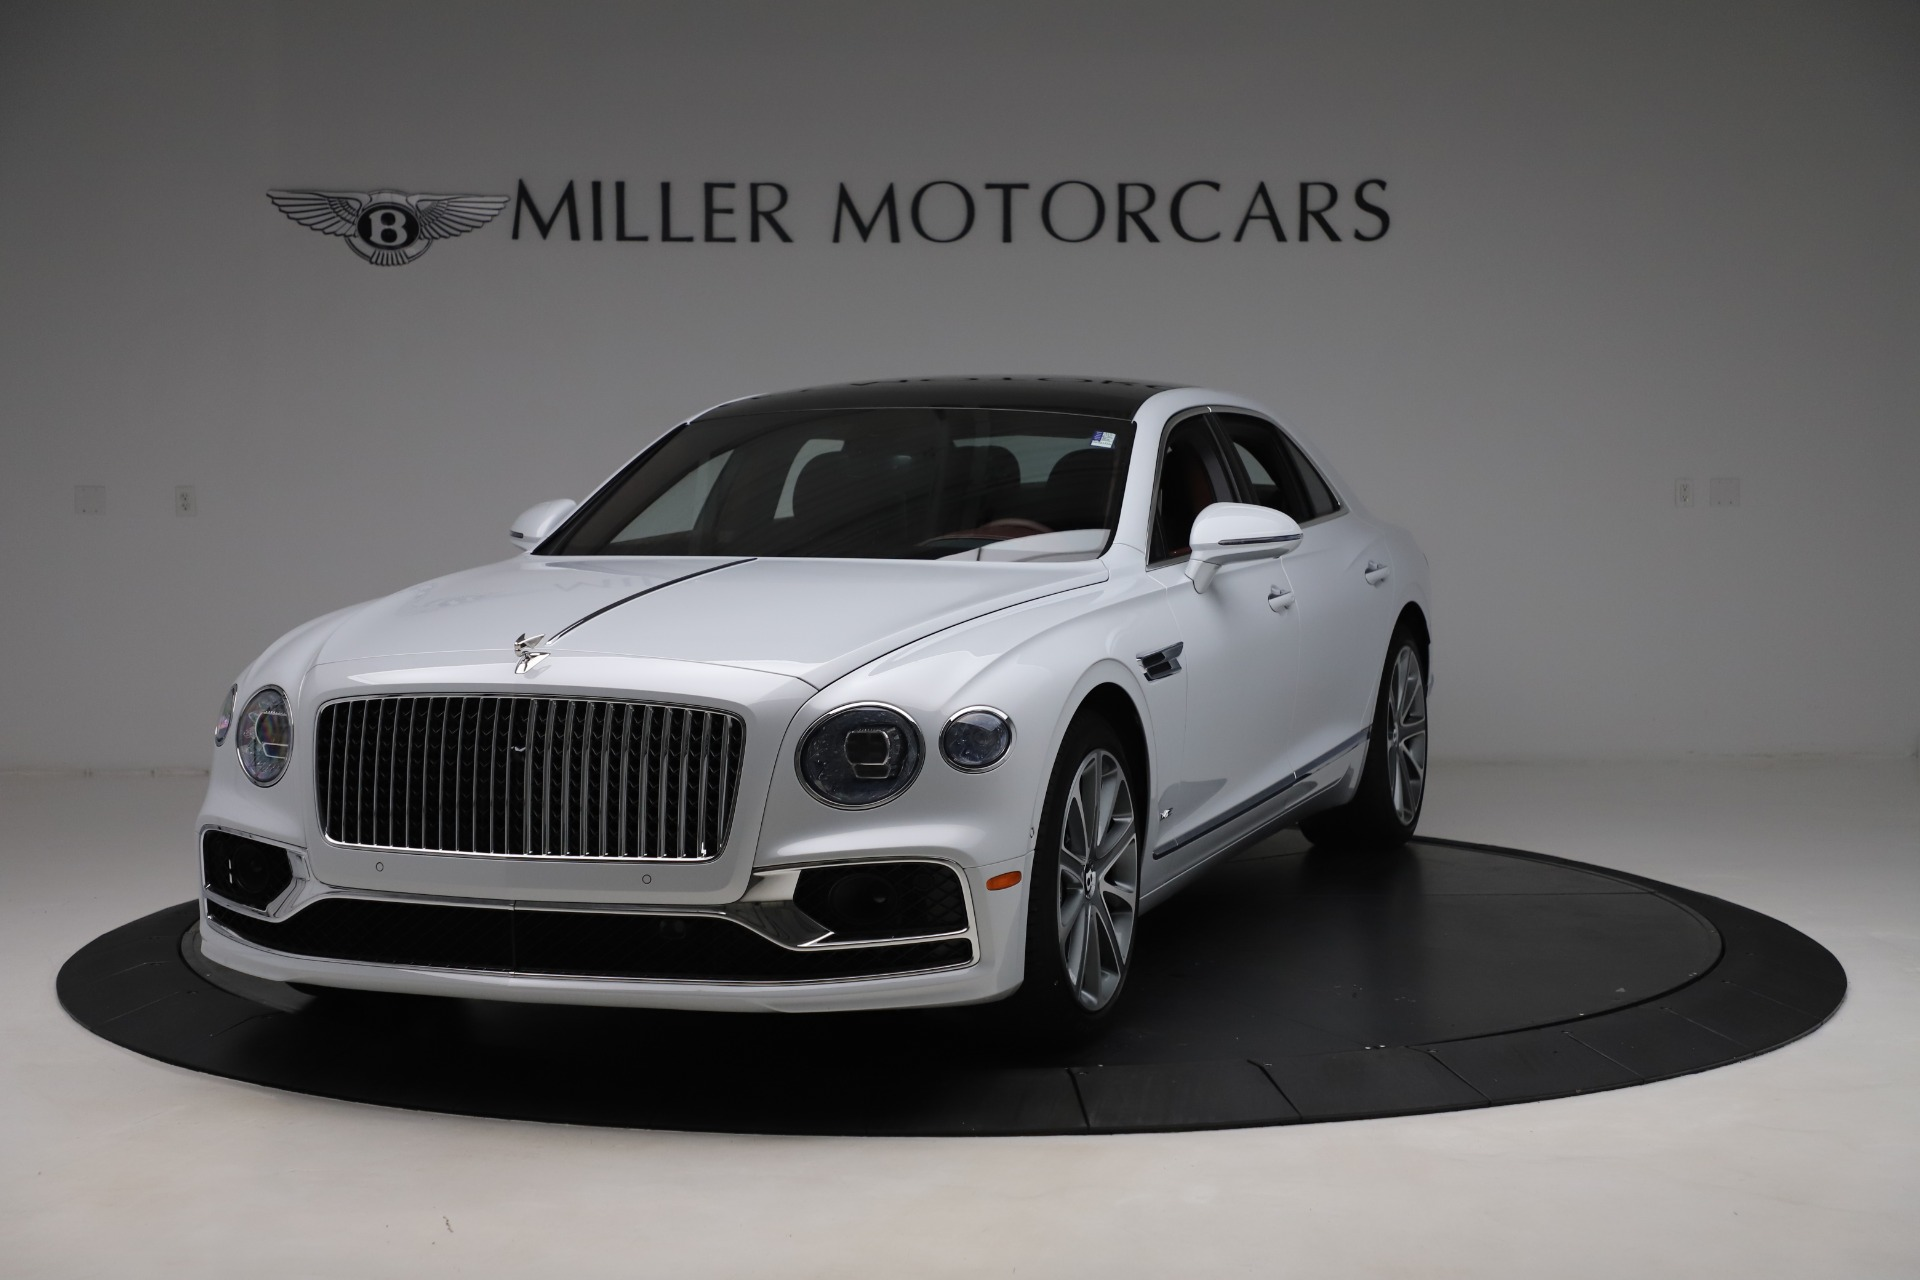 New 2020 Bentley Flying Spur W12 for sale $277,790 at Bentley Greenwich in Greenwich CT 06830 1